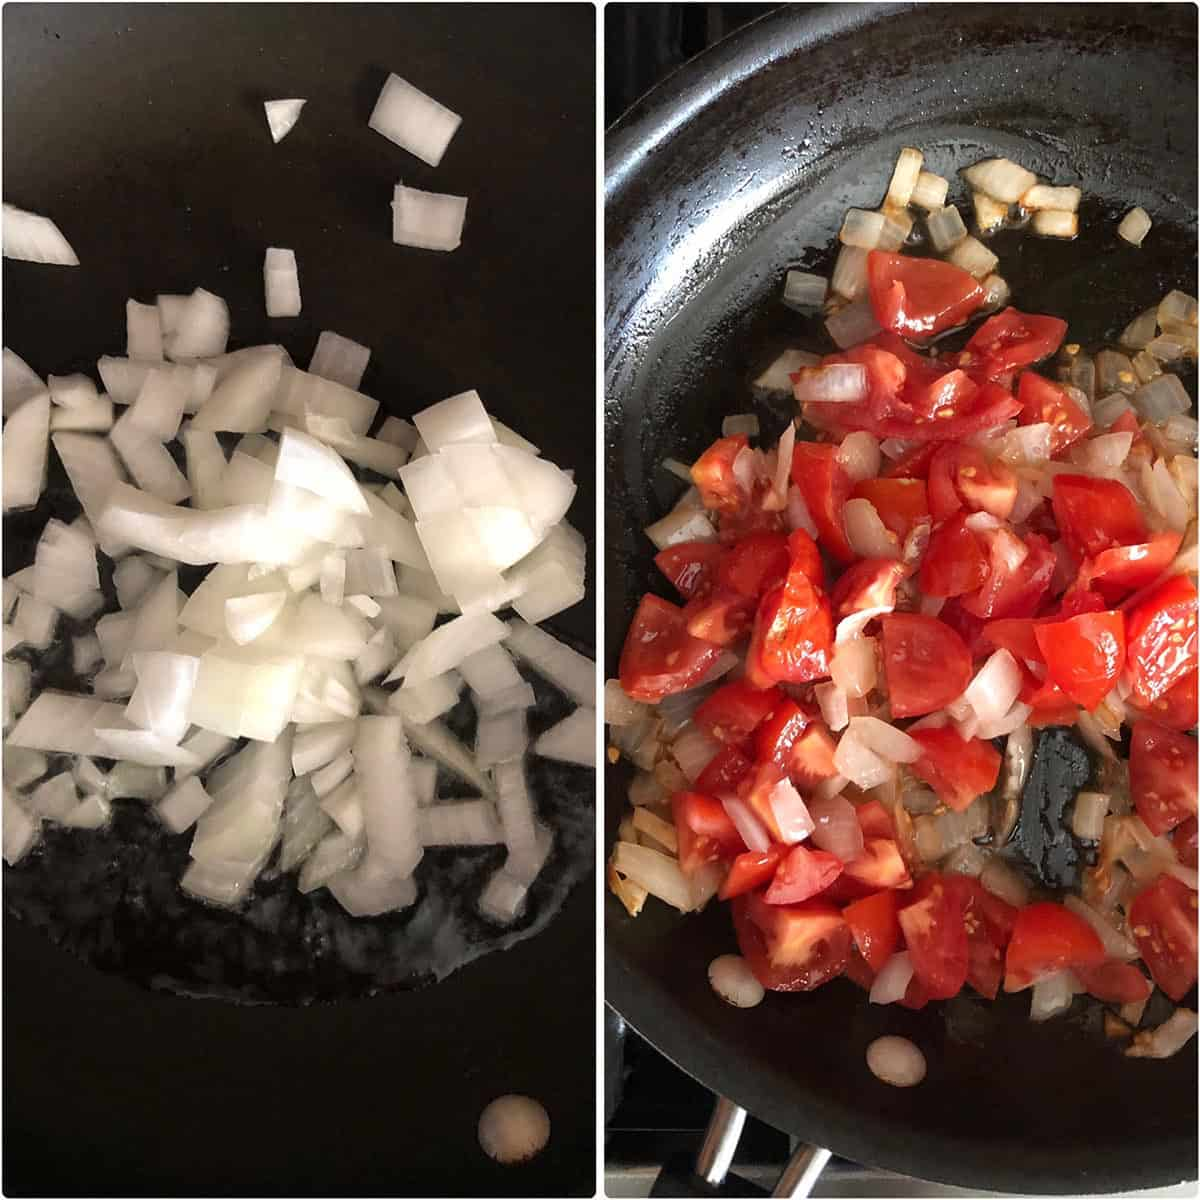 Sauteing onion and tomato for the filling